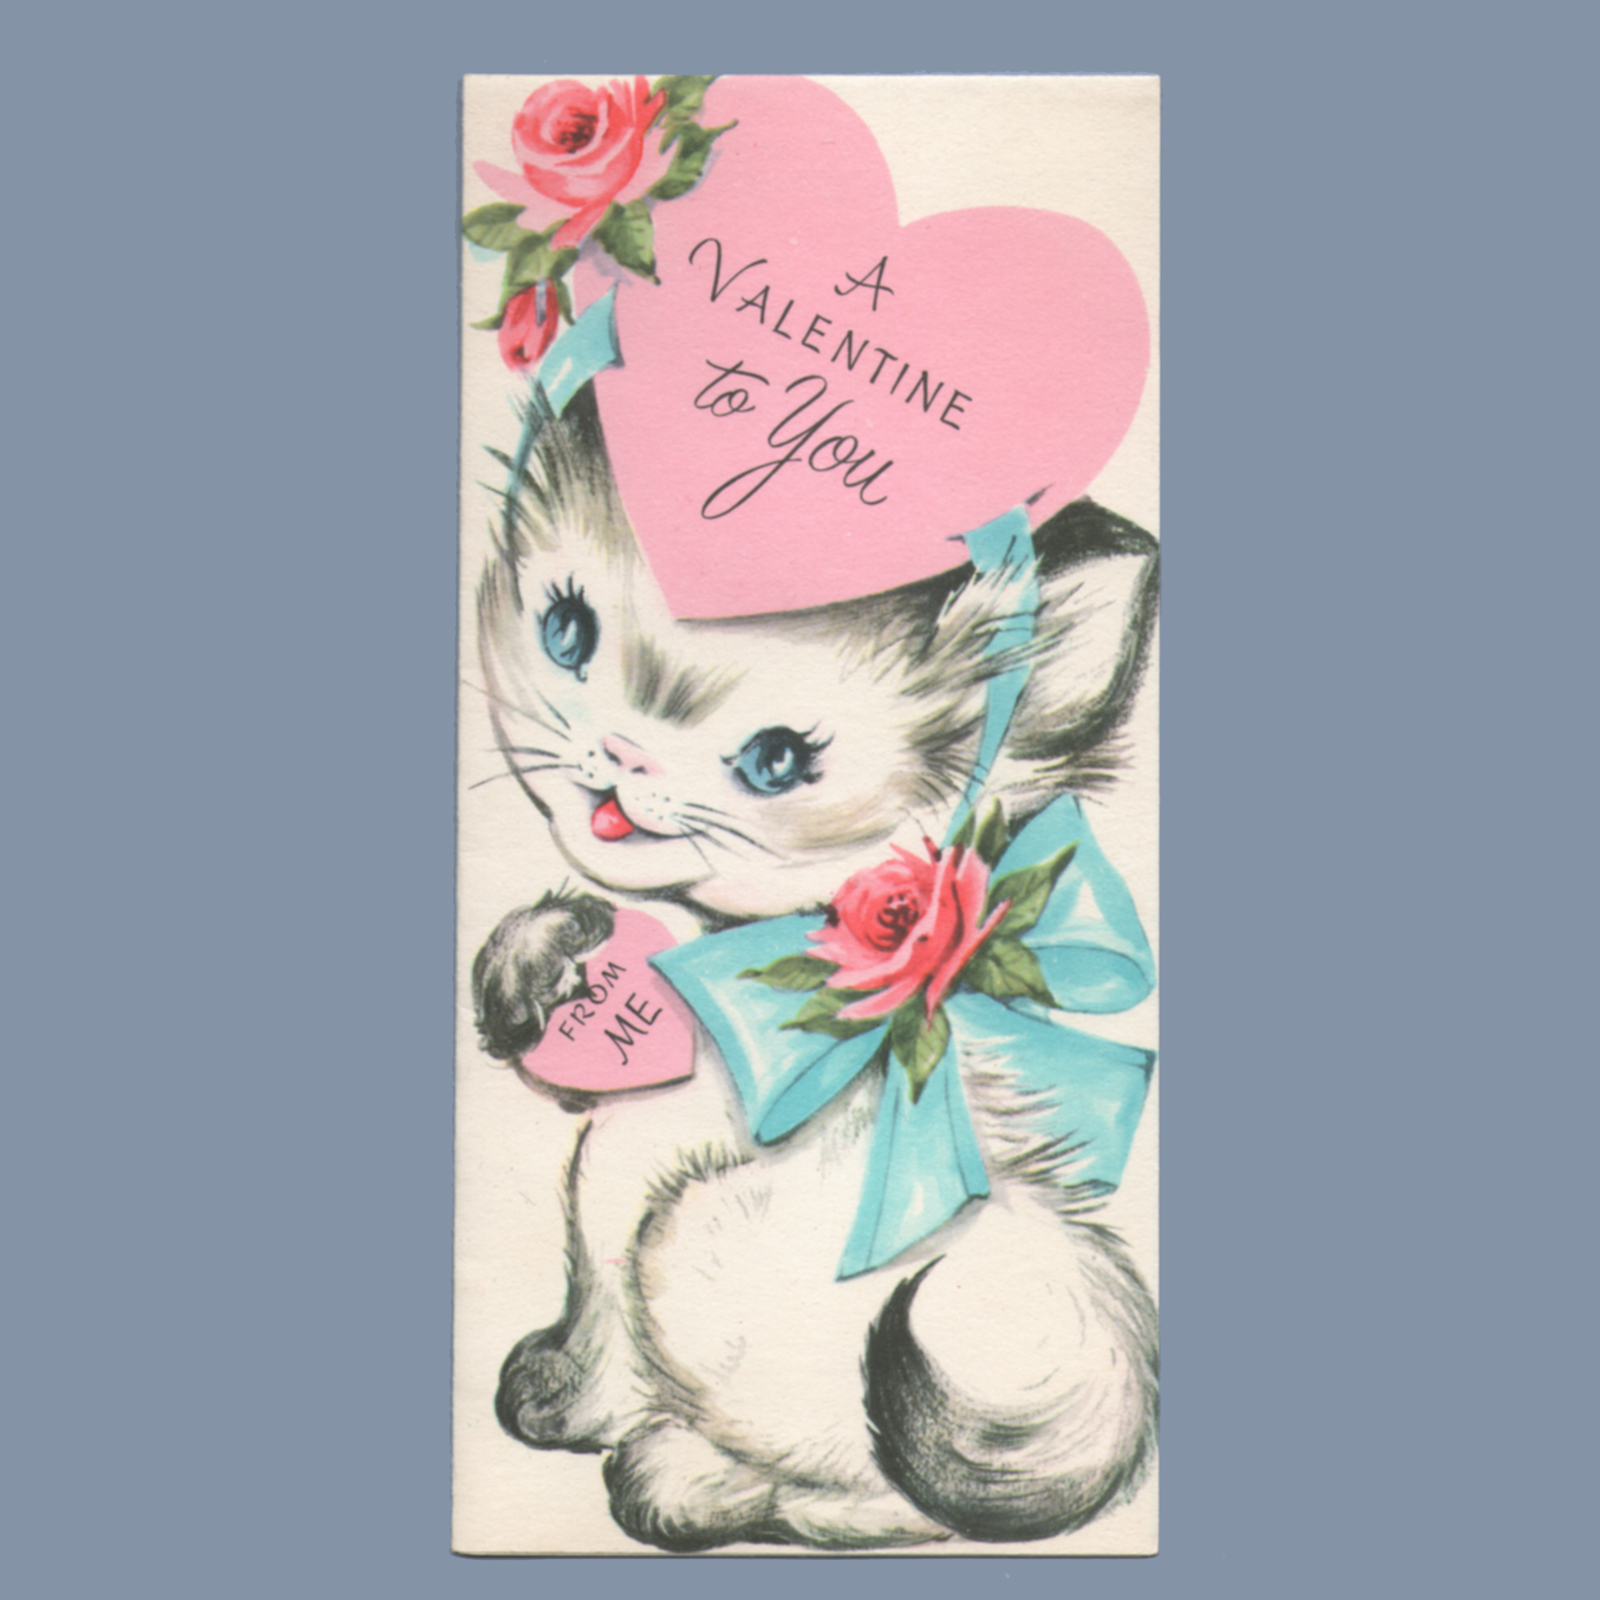 Vintage valentine museum maker gibson art company gibson we have many more gibson cards in our other categories enter gibson in the search box in the upper left to see them all m4hsunfo